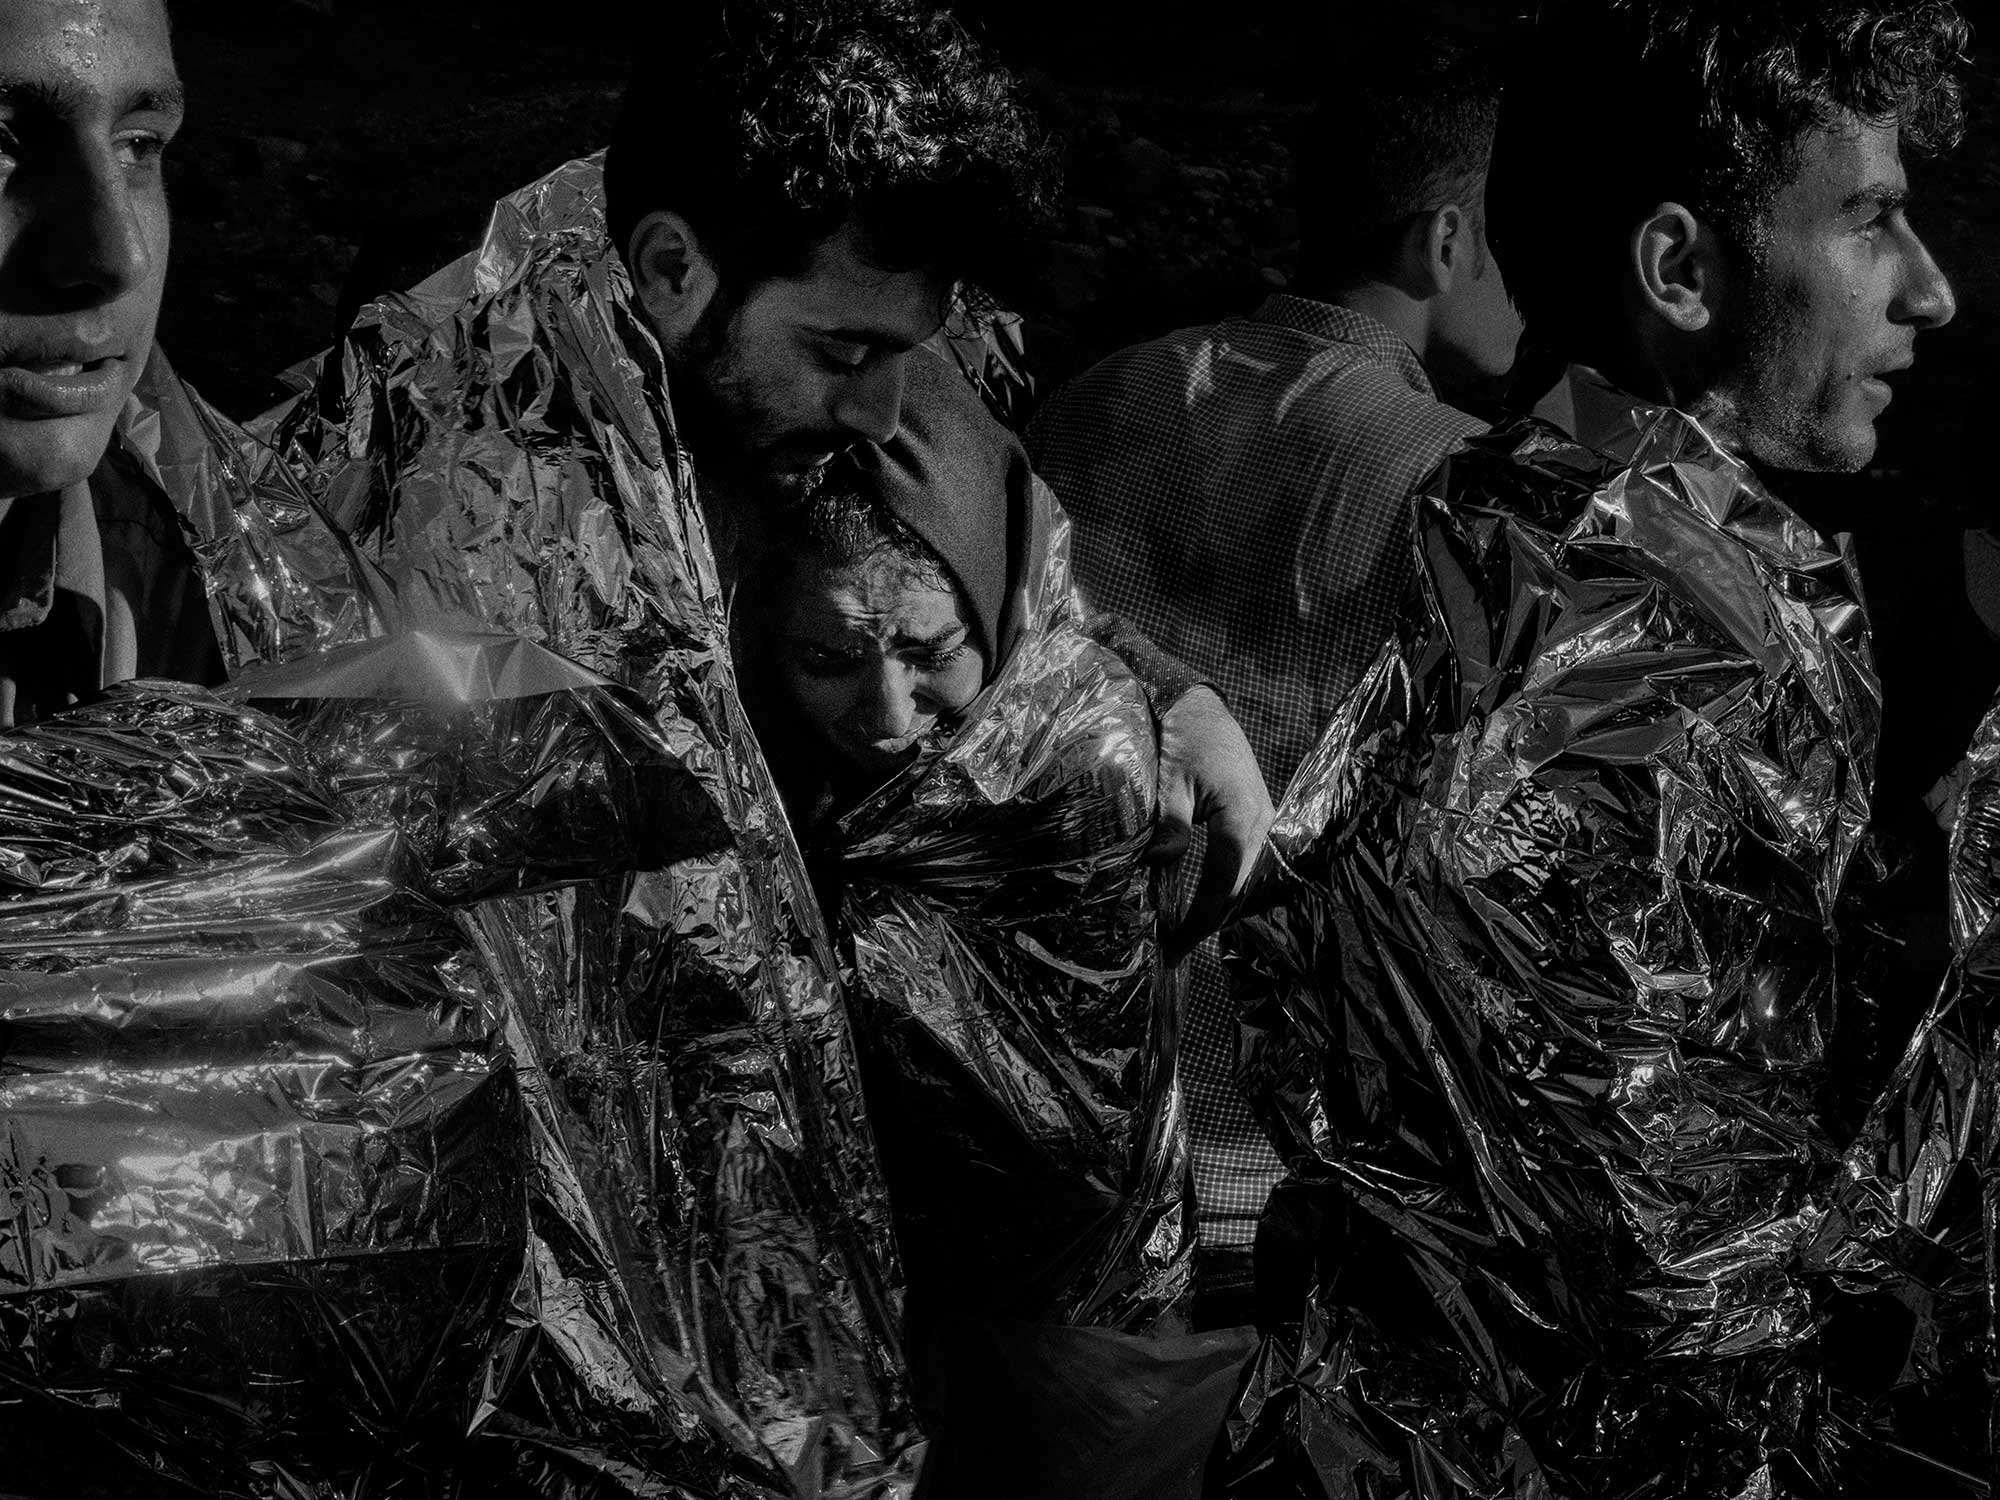 The New Yorker Photo Booth: A Tragedy Unfolds on LesvosRefugees and migrants from Syria, Afghanistan, Pakistan, and Somalia arrive on the northern shores of Lesvos after their journey from the Turkish coast. Lesvos, Greece, 2015.